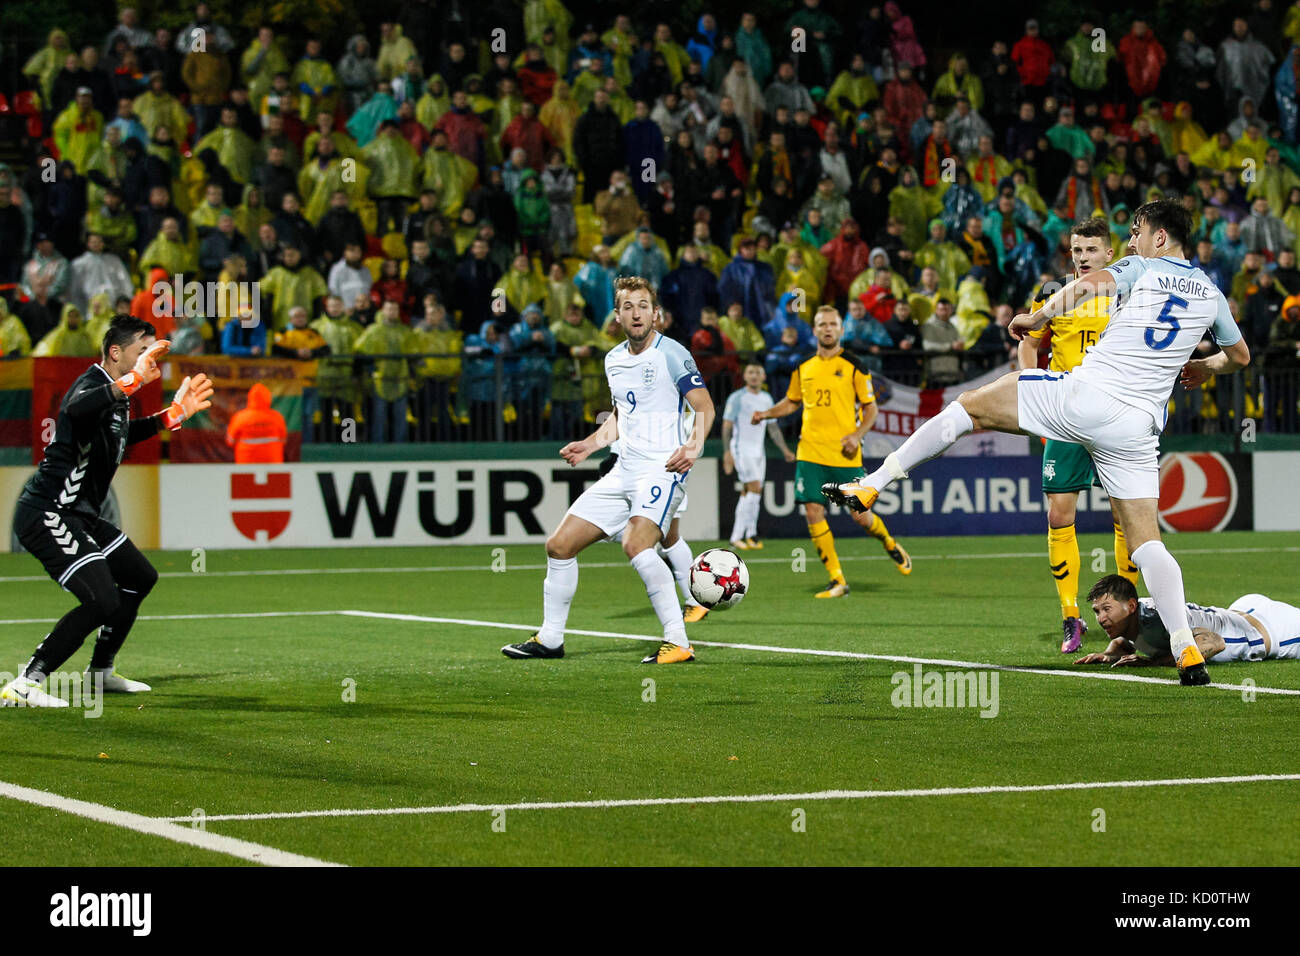 Vilnius, Lithuania. 8th Oct, 2017. Harry Maguire of England has a shot on goal during the FIFA World Cup 2018 Qualifying - Stock Image